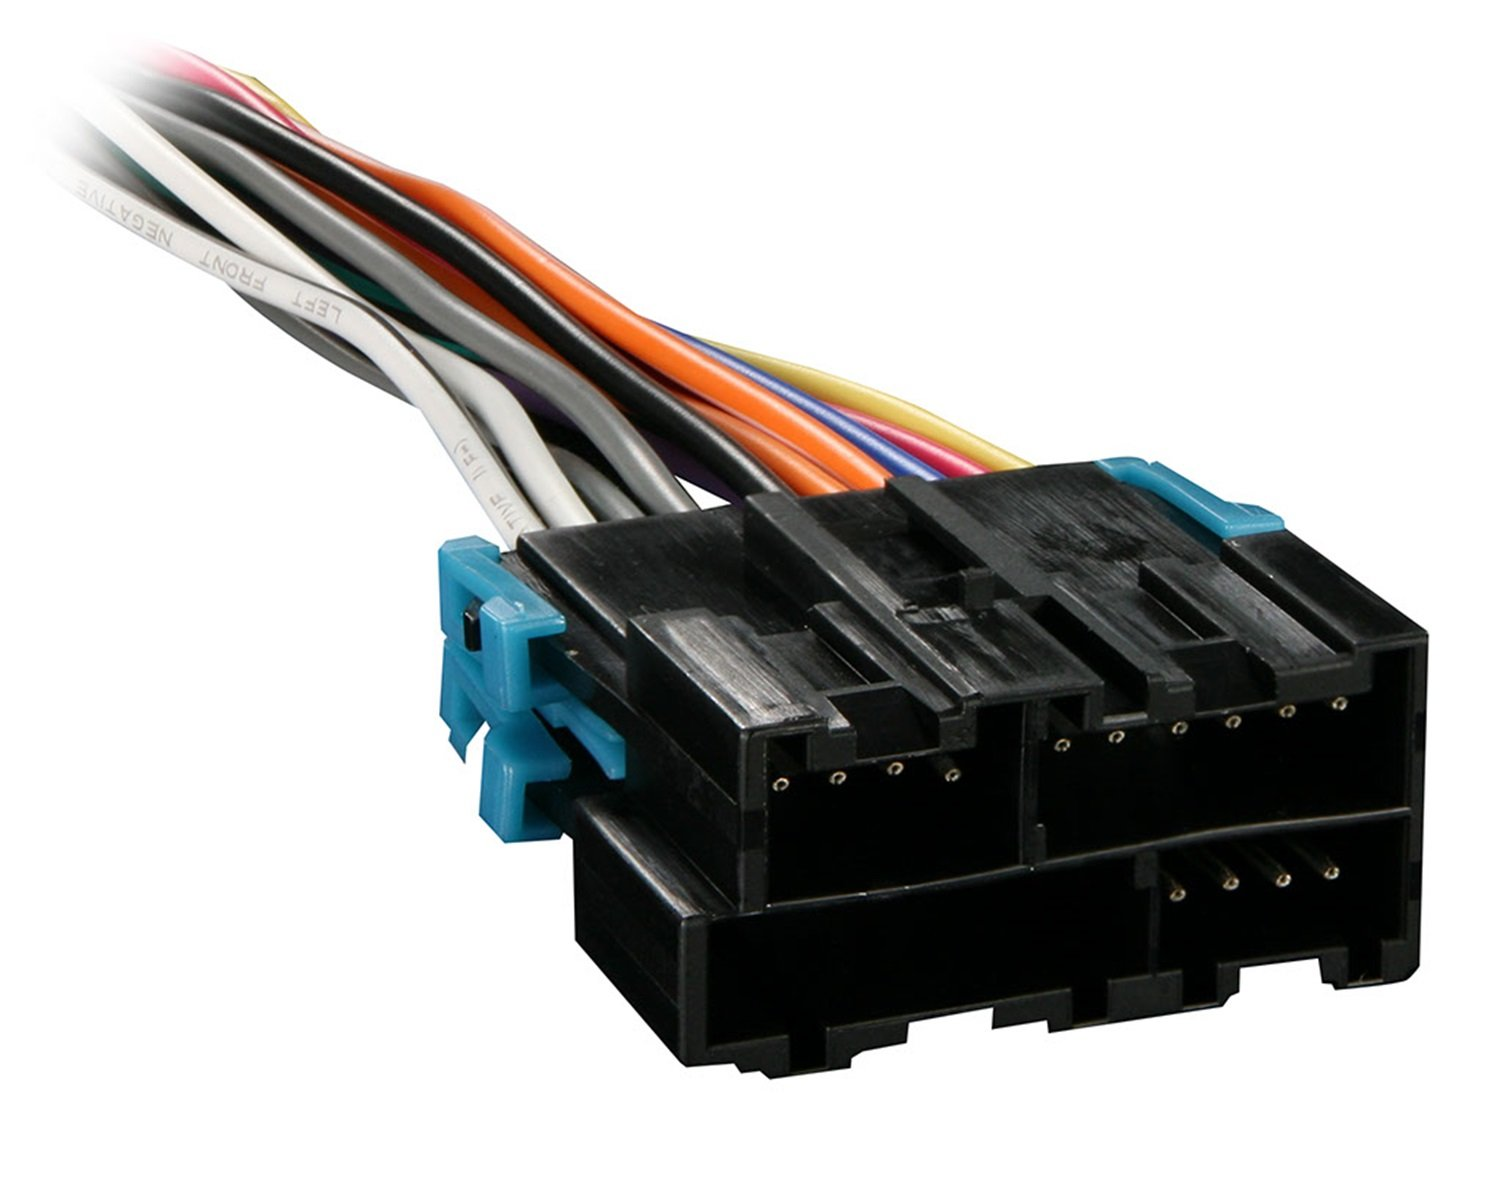 61 CwjZt1hL._SL1500_ radio wiring harnesses amazon com wiring harness for car stereo installation at mr168.co